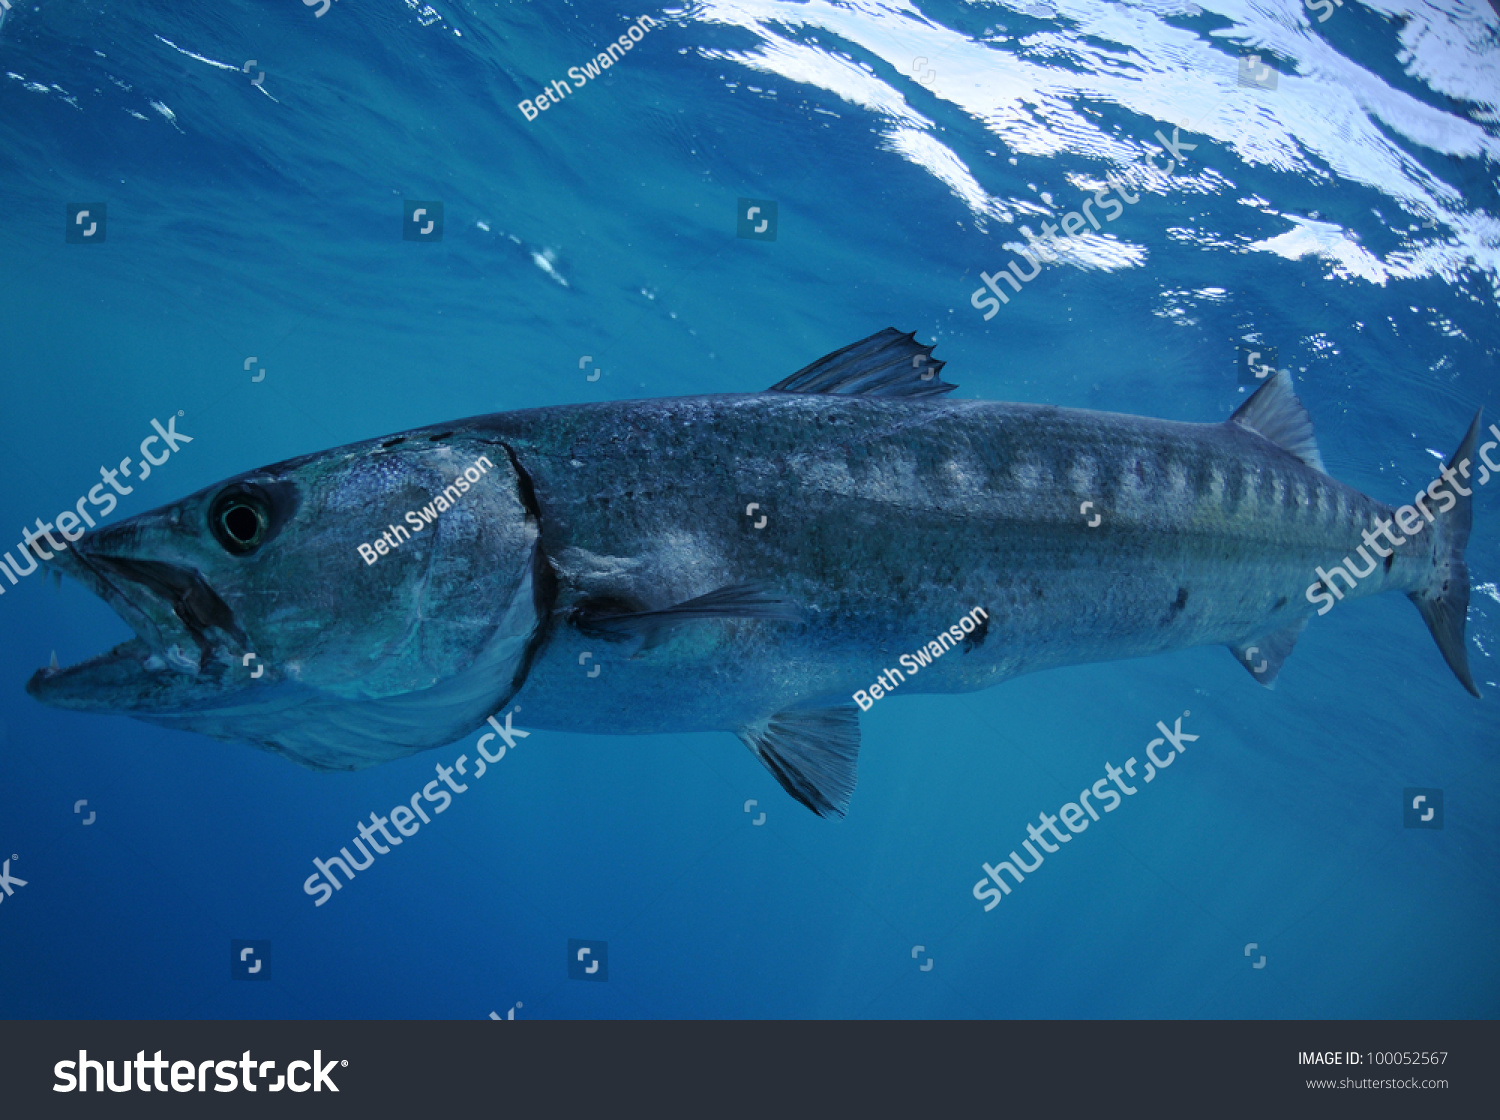 Barracuda Fish Underwater Teeth Showing Stock Photo ...